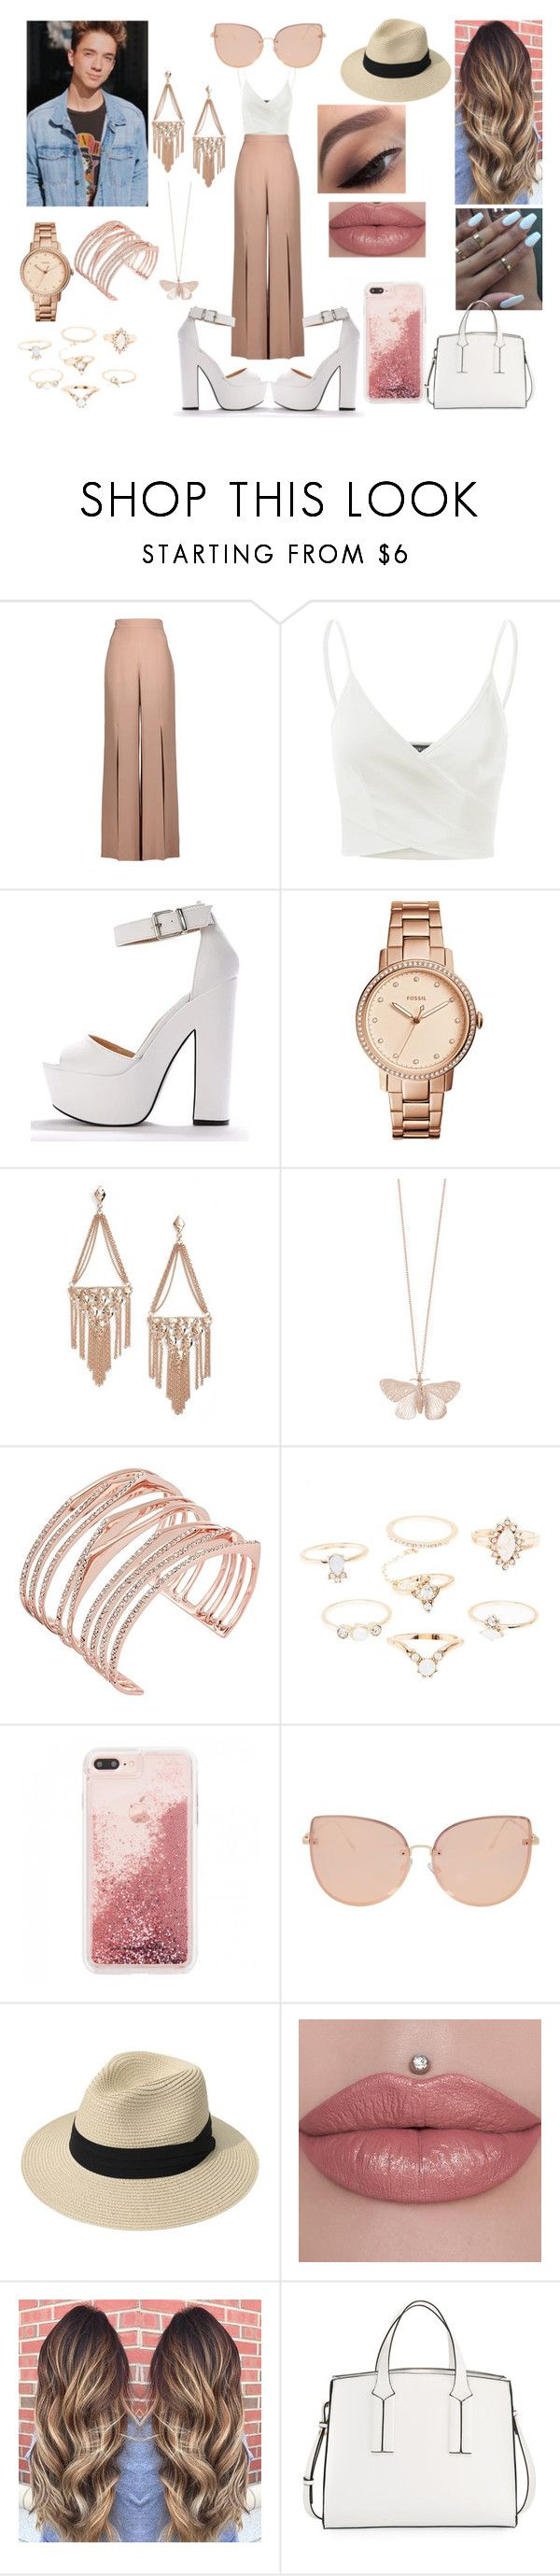 """Summer City Date With Daniel Seavey"" by roxy-crushlings ❤ liked on Polyvore featuring Cushnie Et Ochs, Doublju, FOSSIL, Kendra Scott, Alex Monroe, Alexis Bittar, Charlotte Russe, Topshop, French Connection and DanielSeavey"